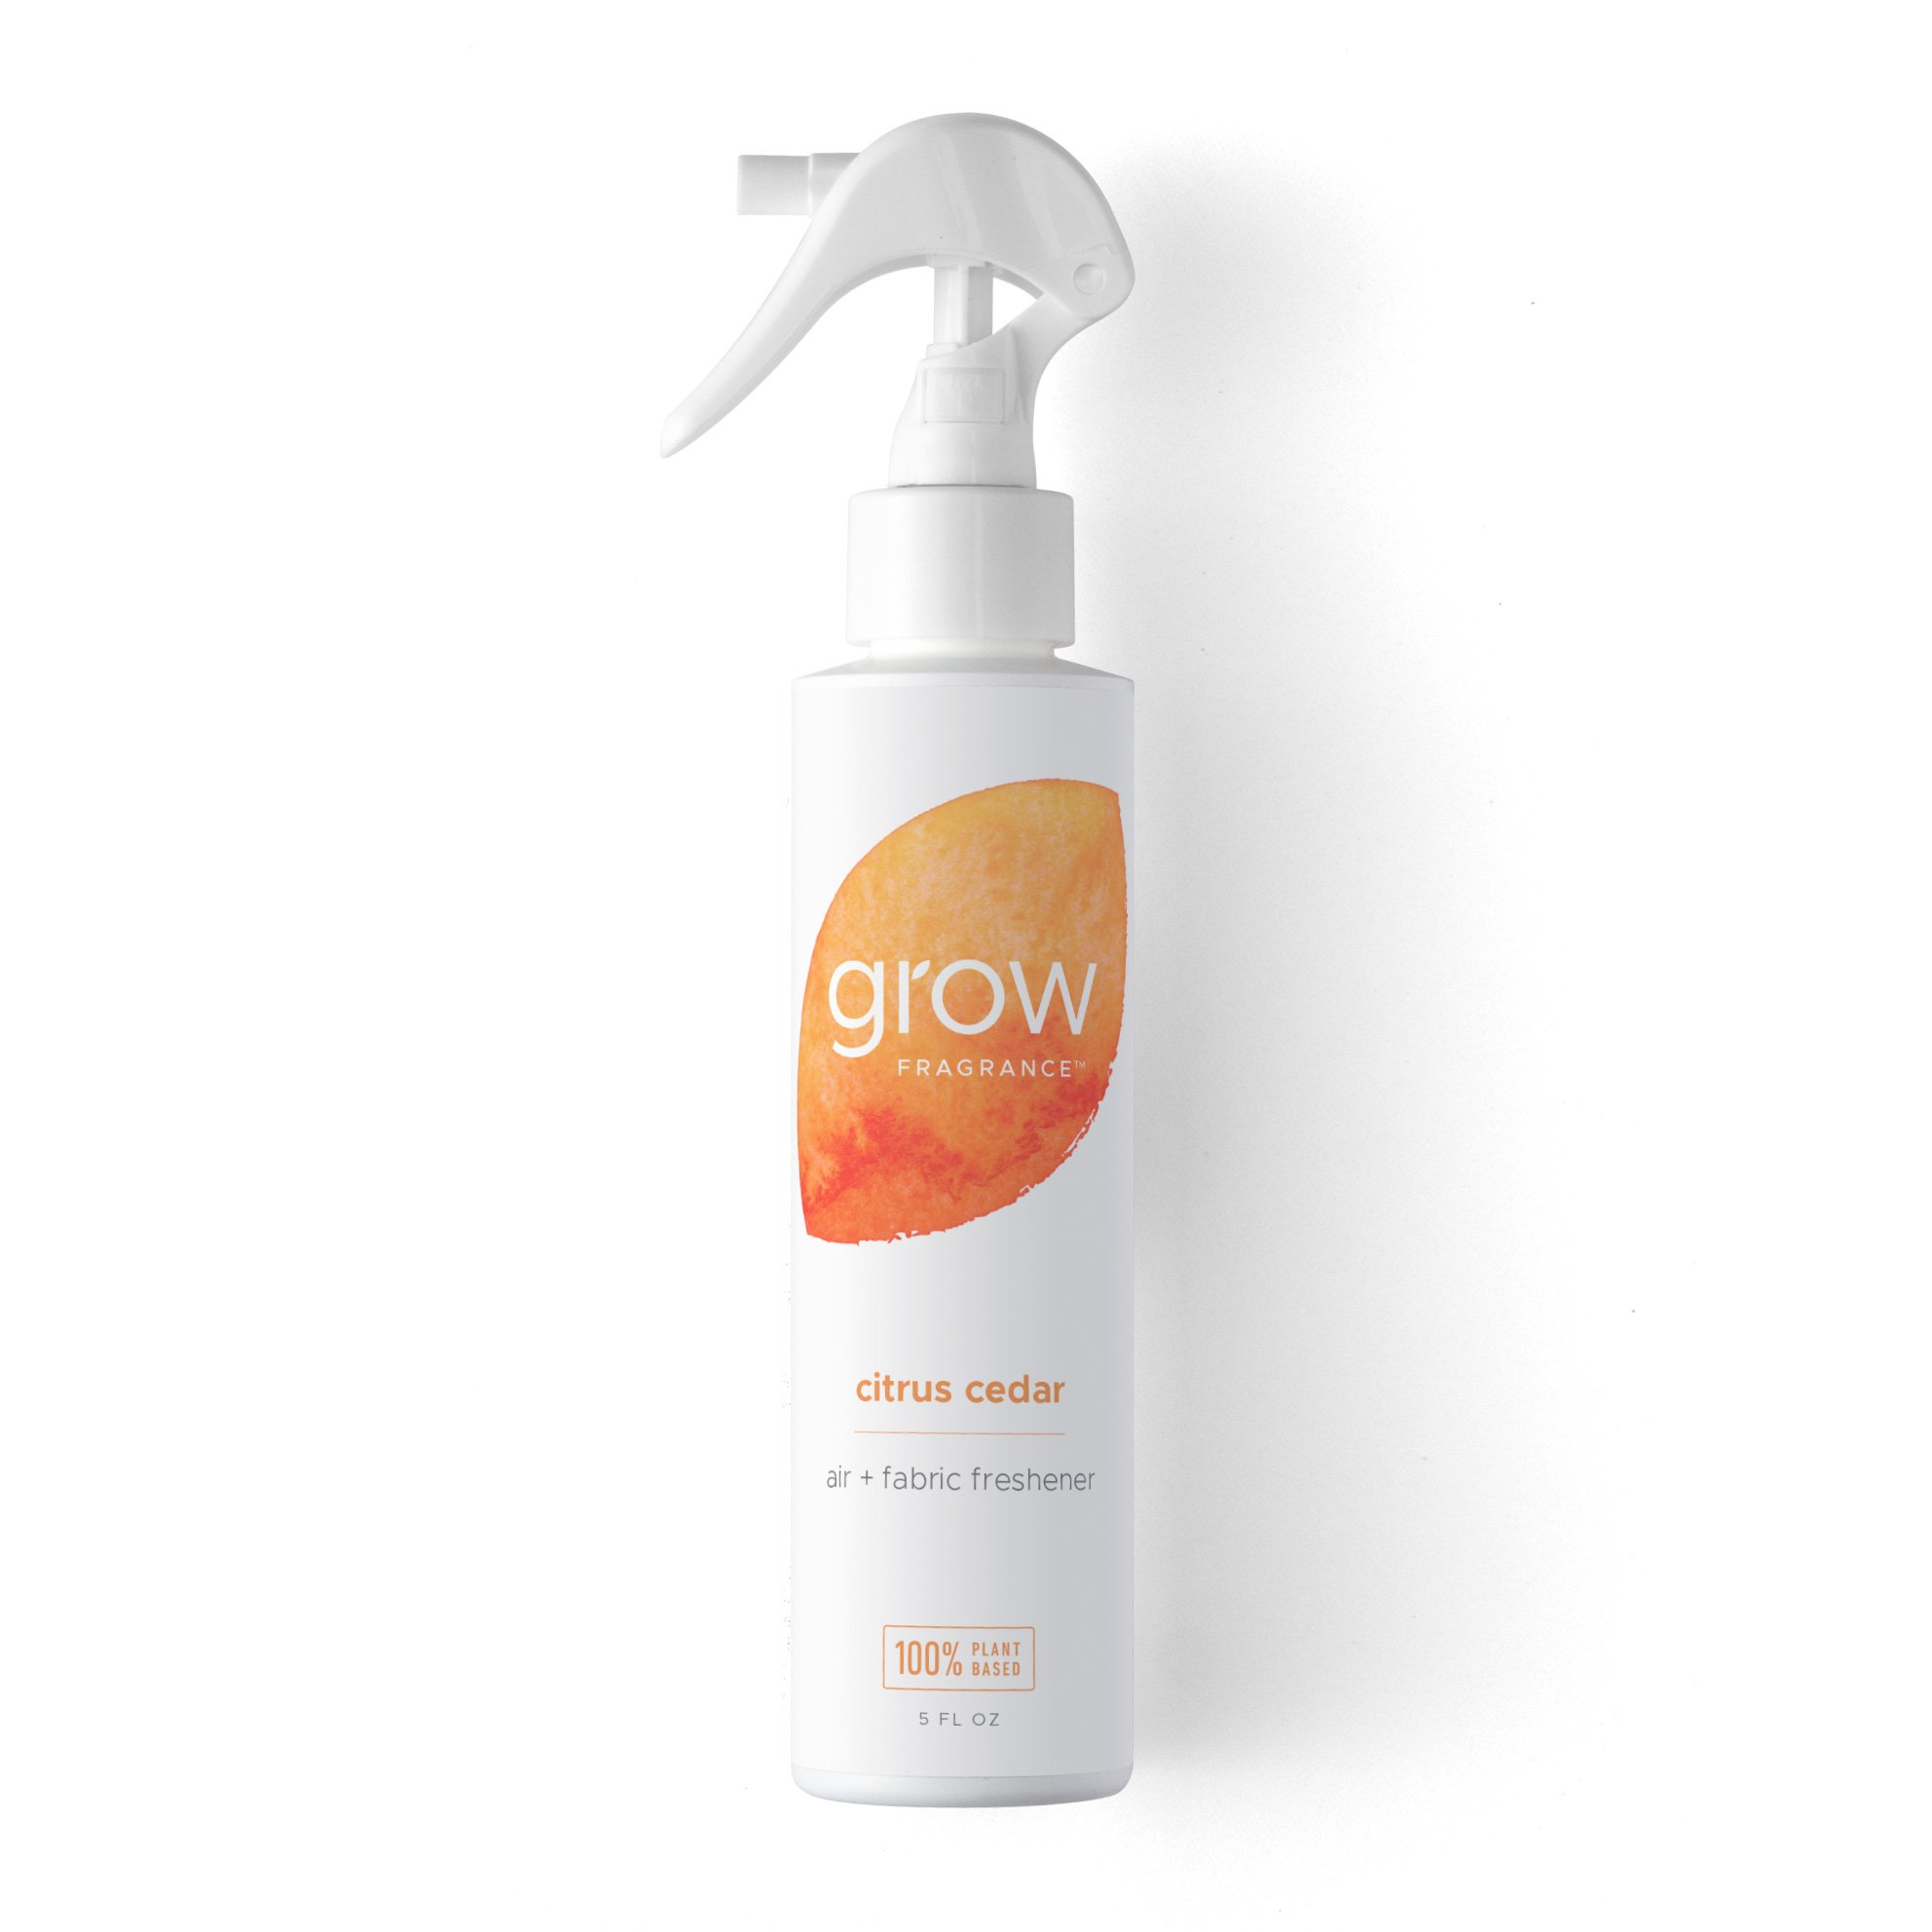 Grow Fragrance 100% Plant-Based Air + Fabric Freshener, 5 oz (Citrus Cedar) Safe For Home - Over 500 Sprays!